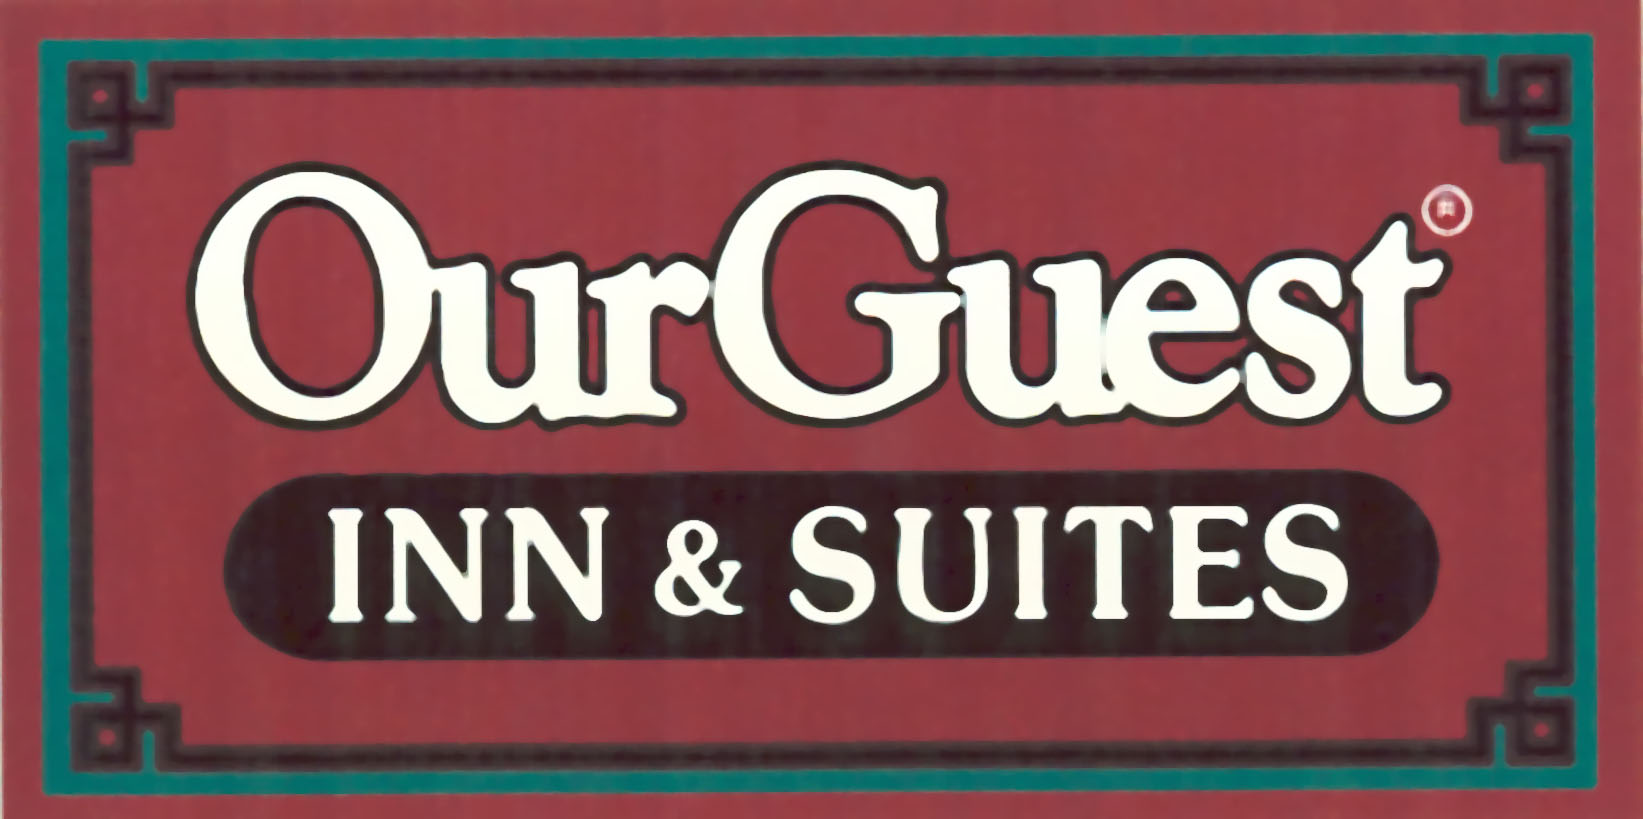 Our Guest Inn & Suites